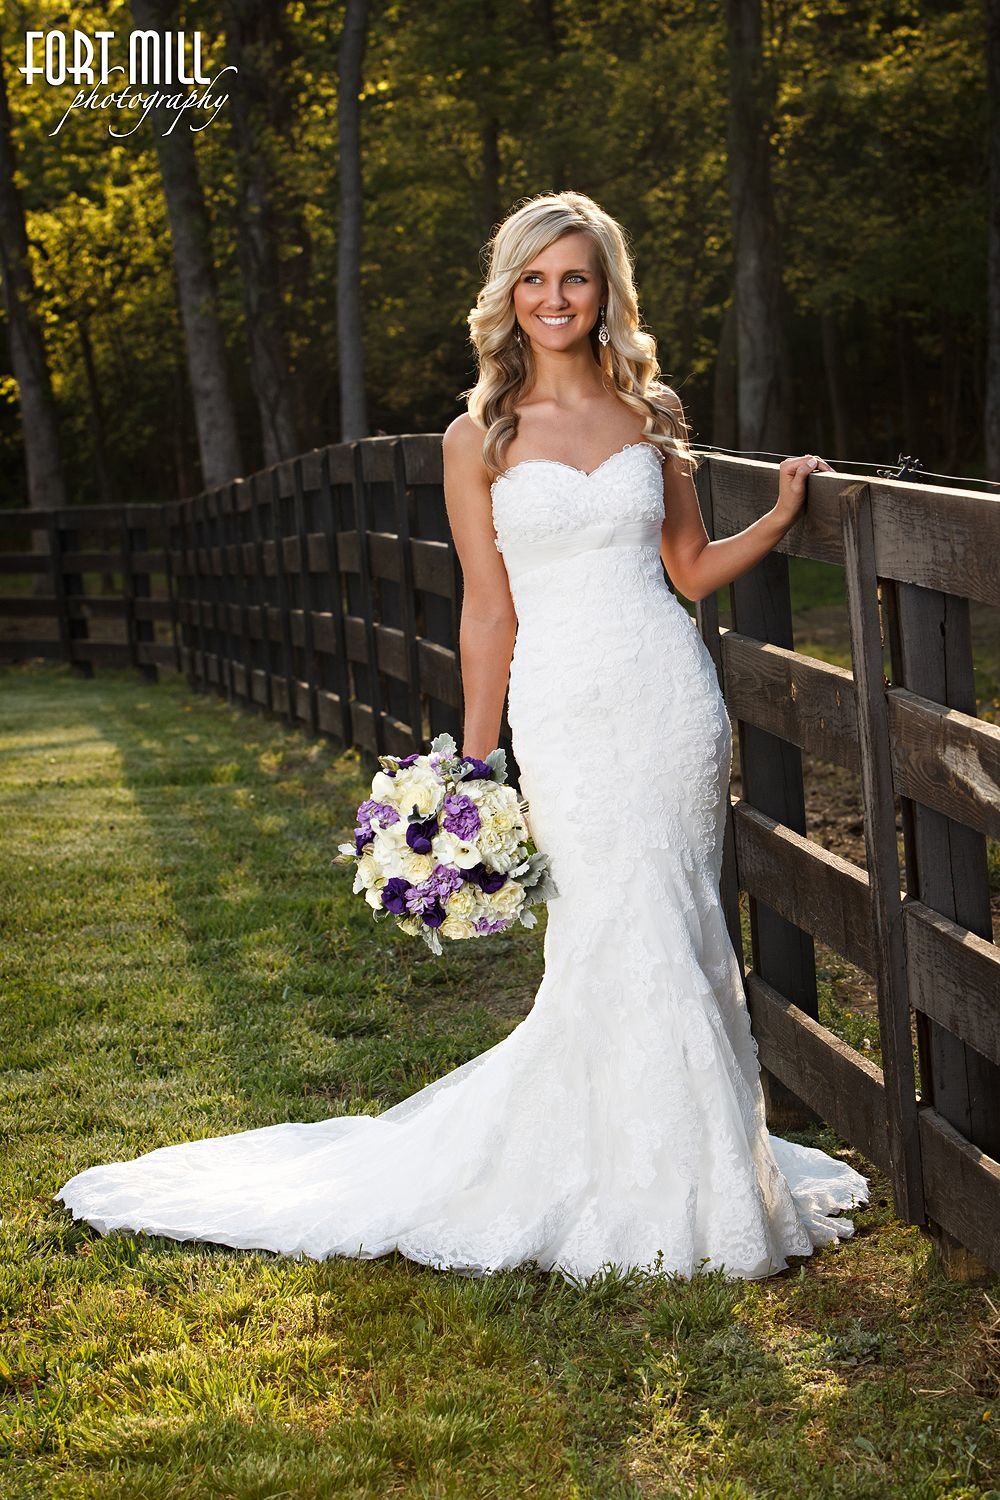 Bridal Portrait at Morning Glory Farms © Fort Mill